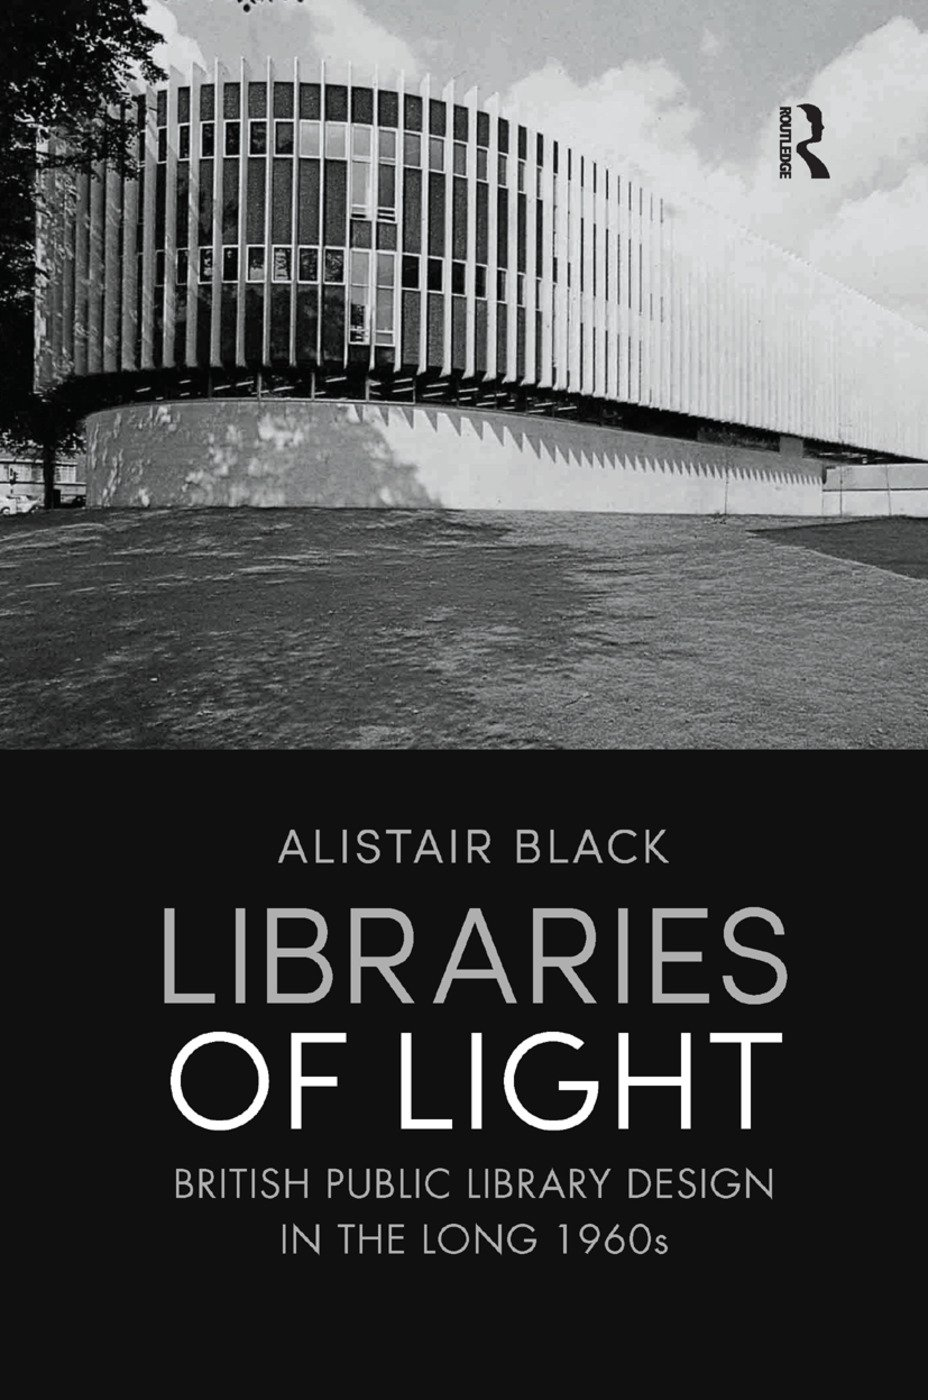 Libraries of Light: British public library design in the long 1960s book cover